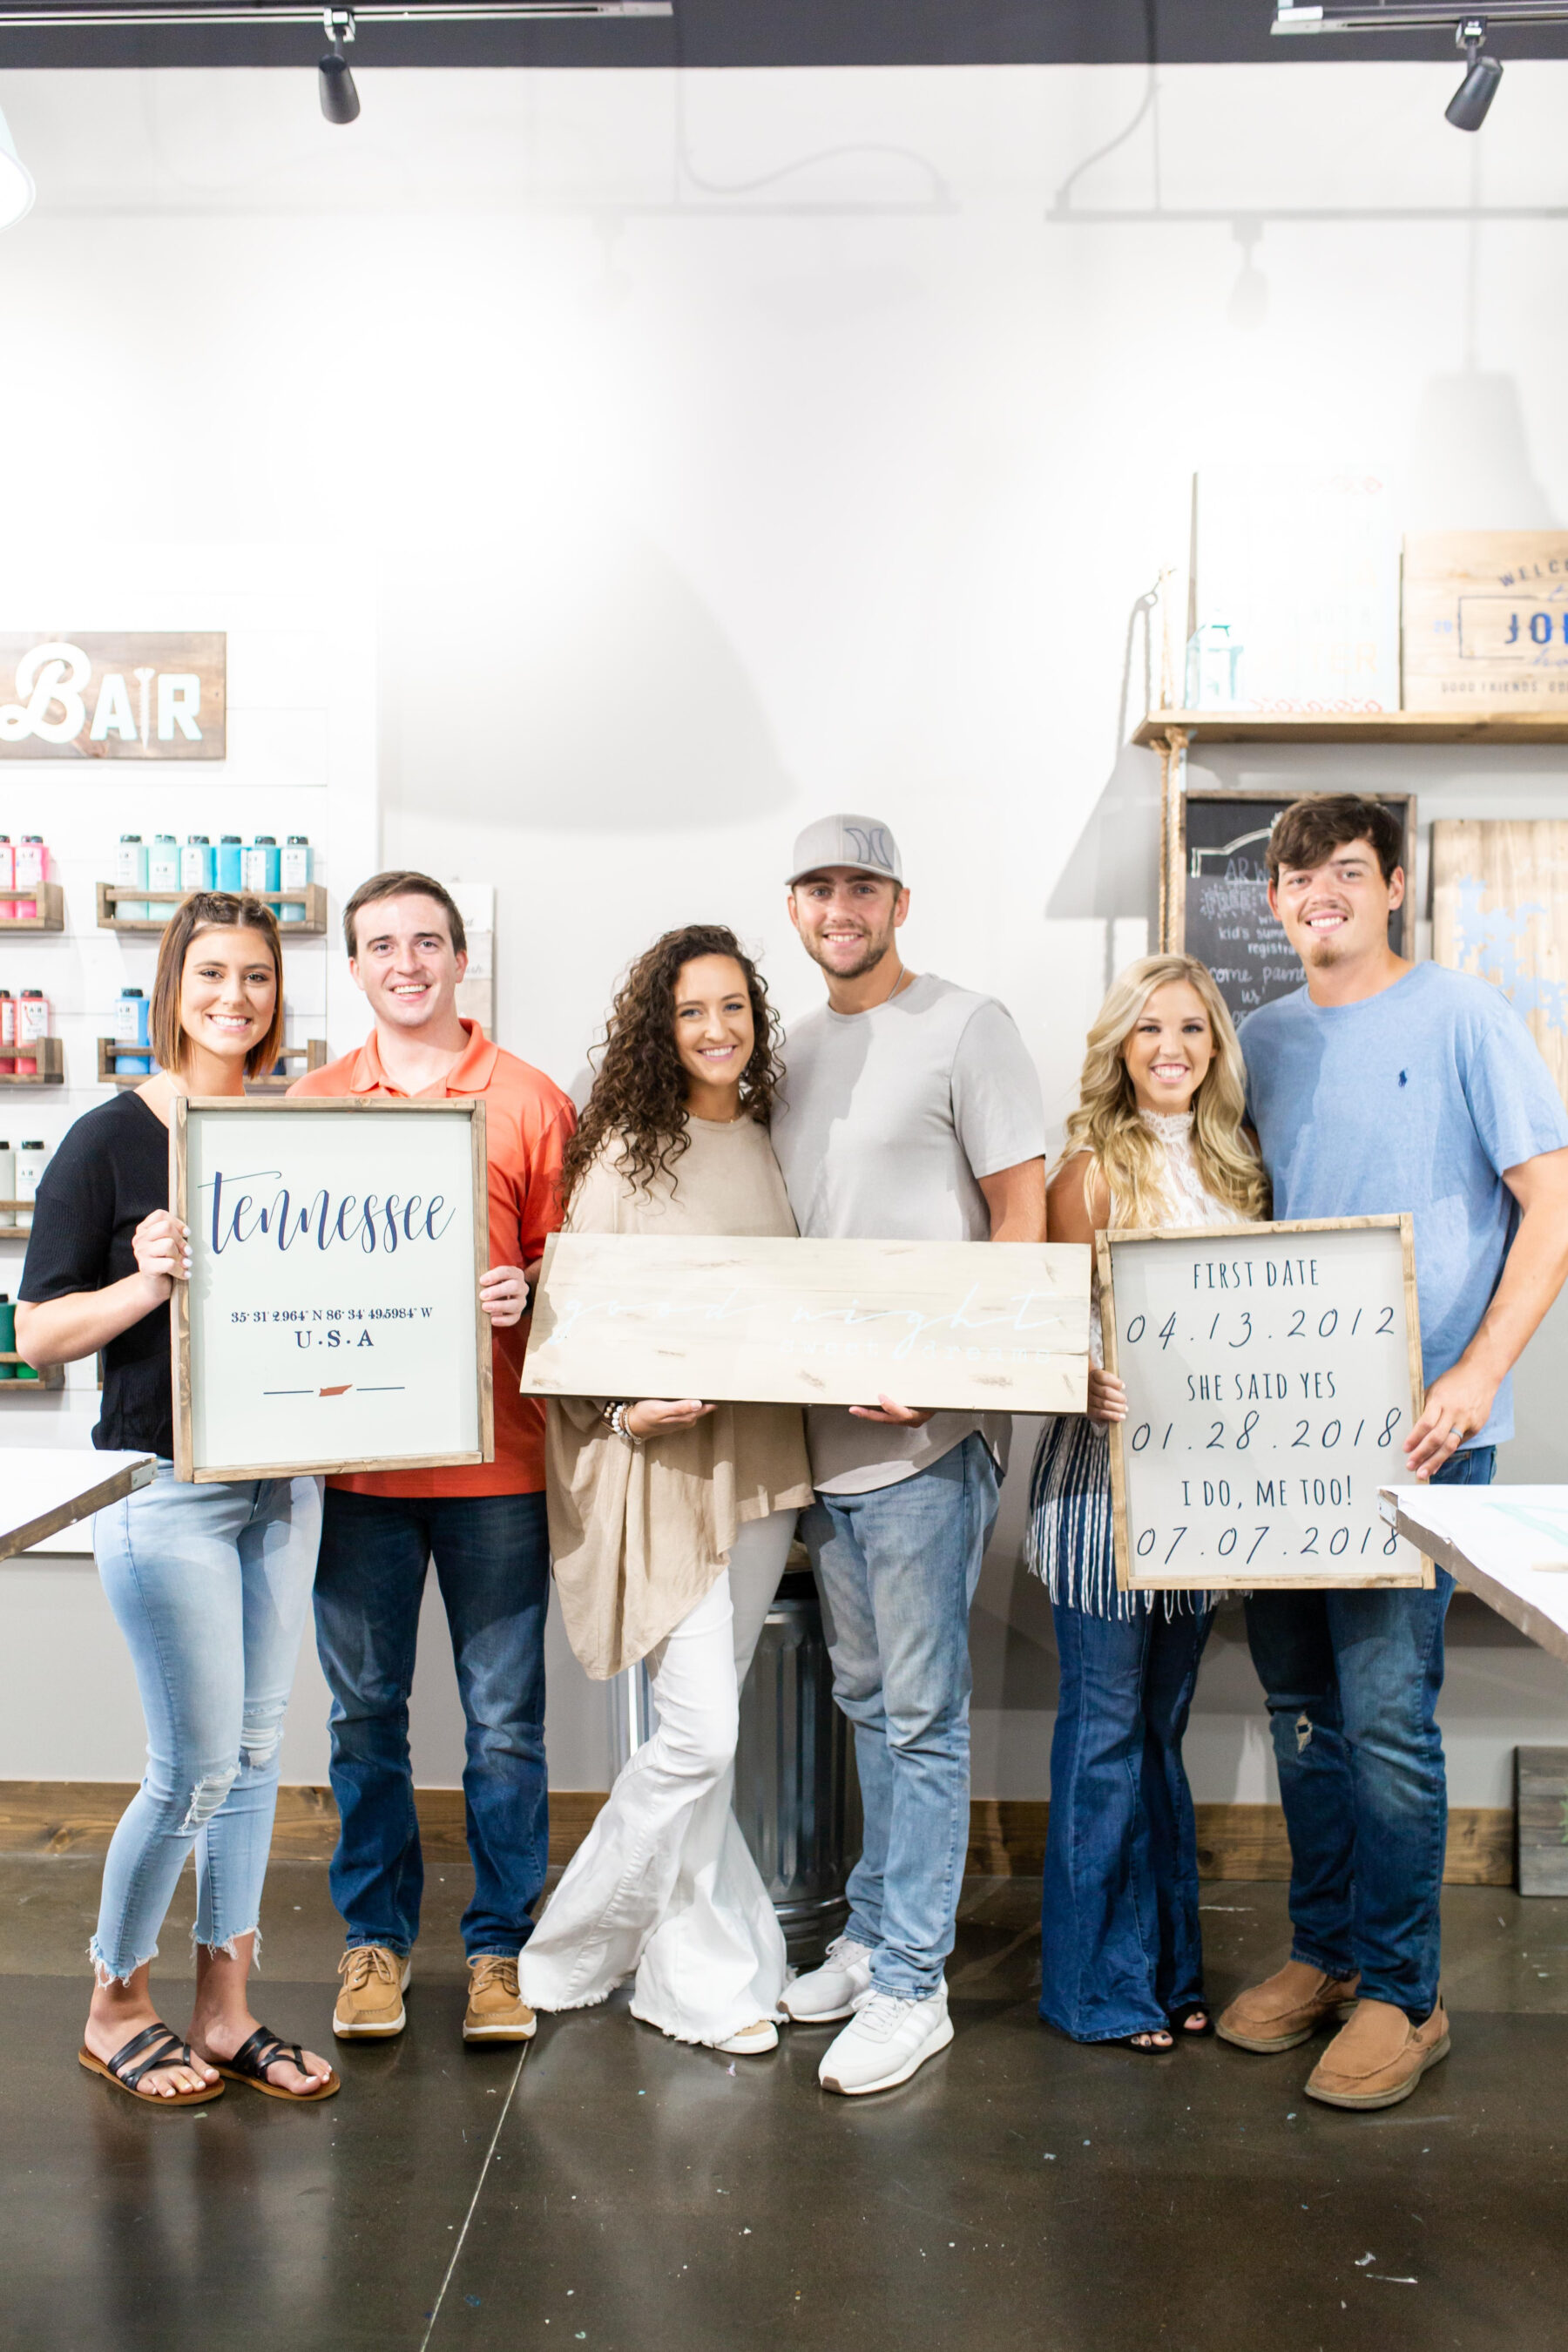 How to Host an Interactive Bridal Shower from AR Workshop Mt. Juliet featured on Nashville Bride Guide